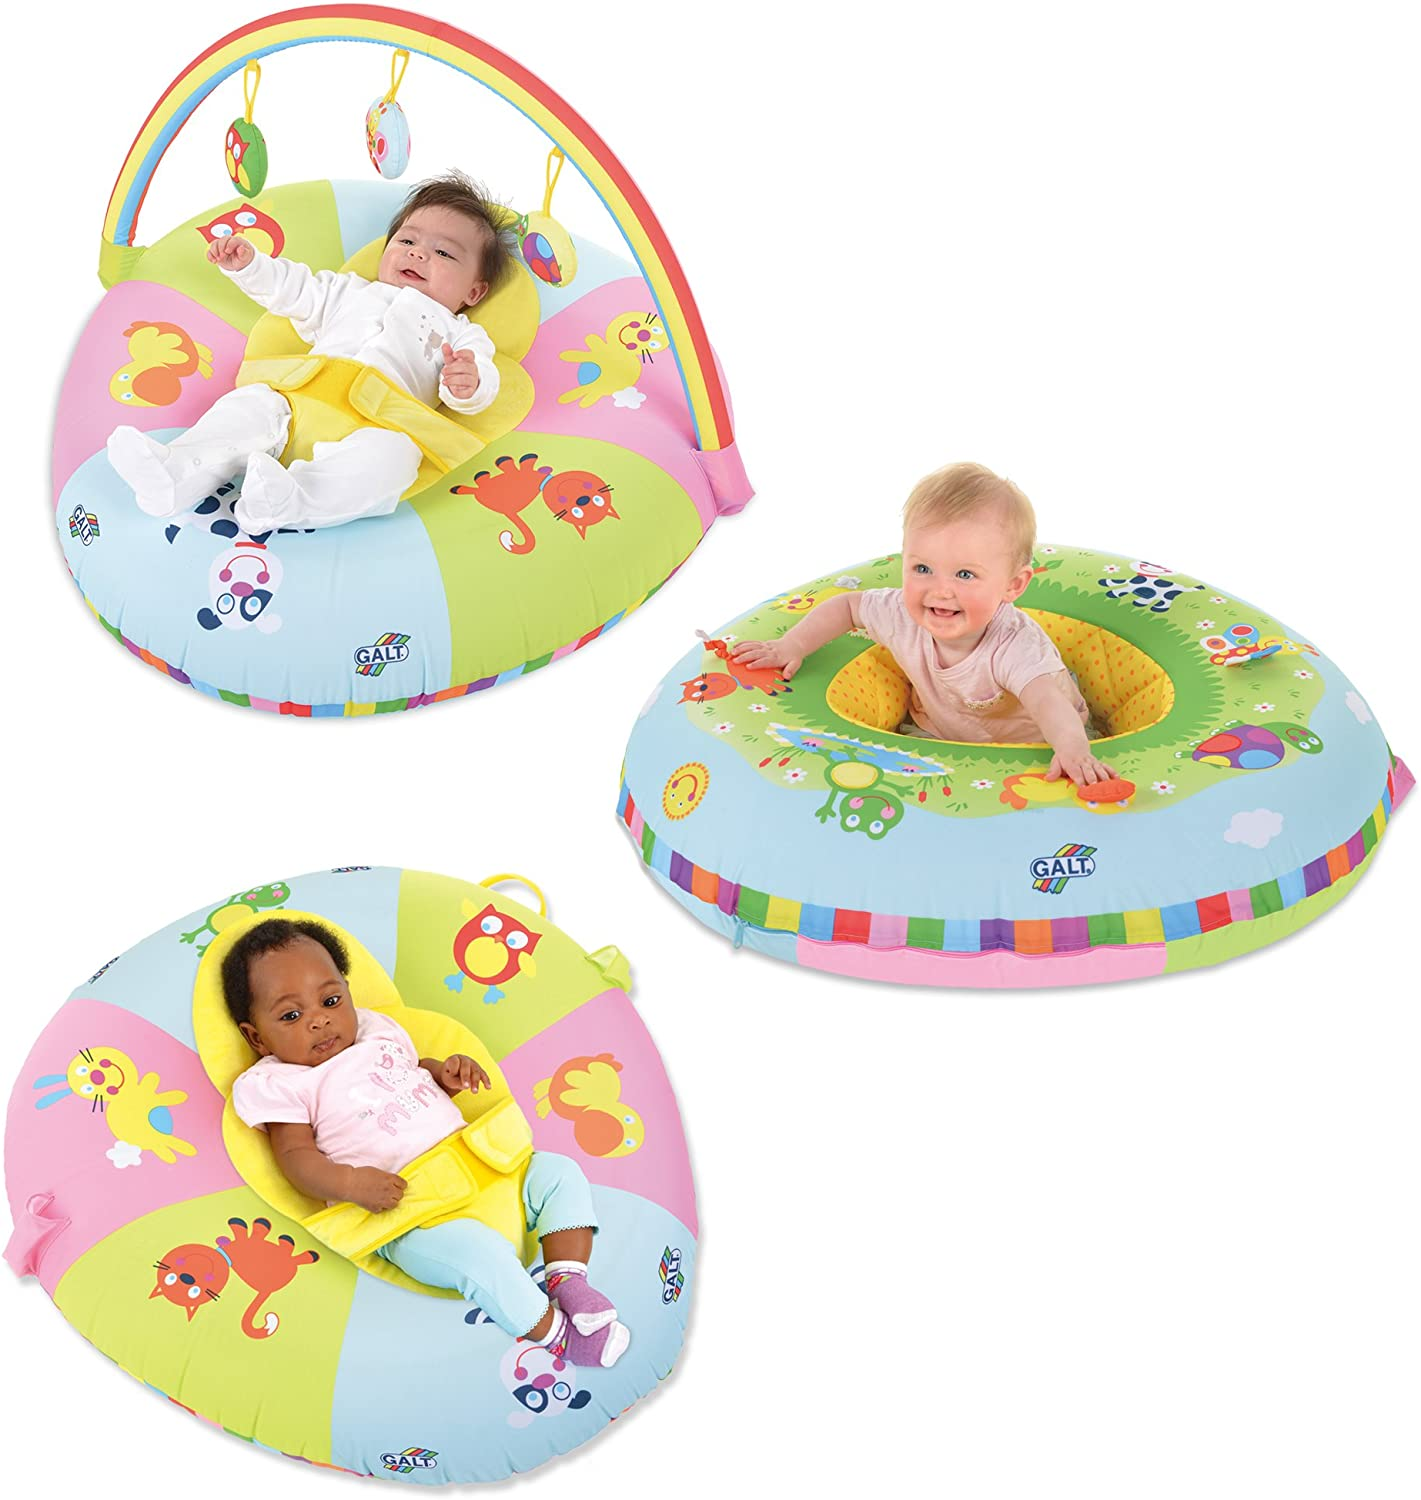 Galt Toys, 3 in 1 Playnest & Gym, Baby Activity Center & Floor Seat, Ages 0+, Multicolor, Model:1004819